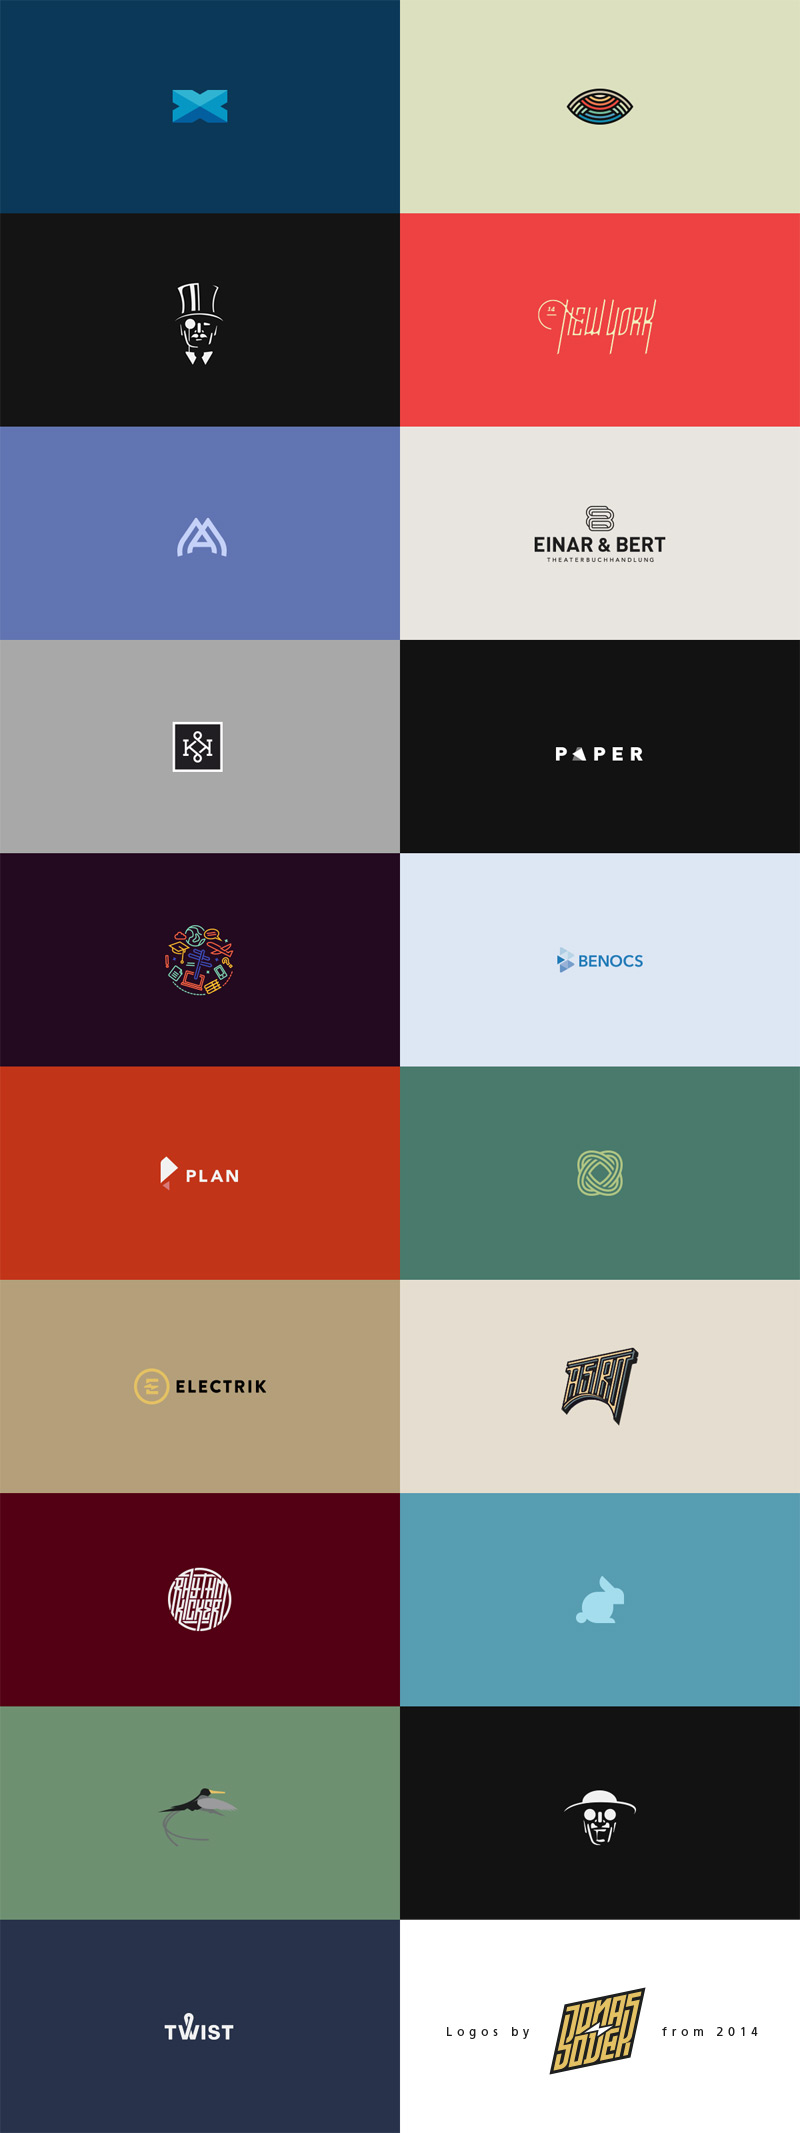 Logos from 2014 by Jonas Söder